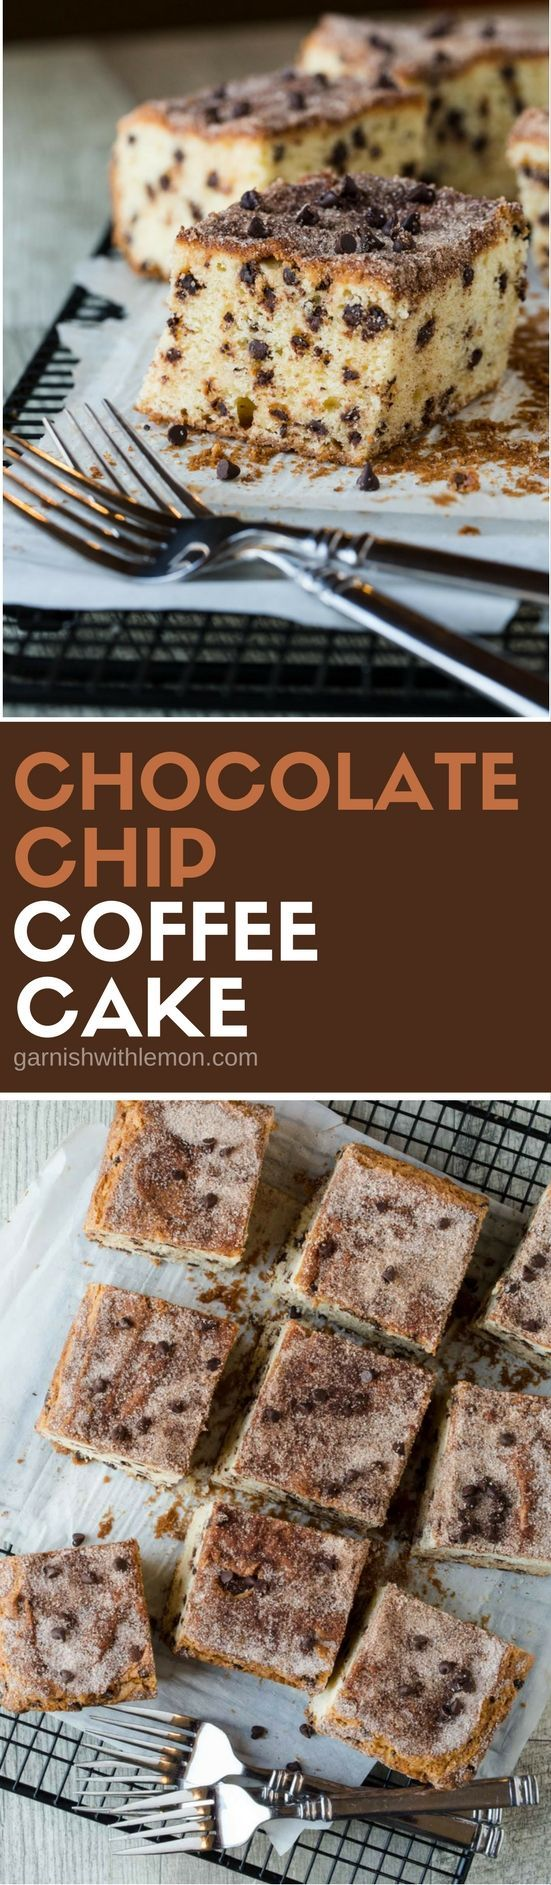 1270 best Recipes: Cakes, Cupcakes - Fancy images on ...